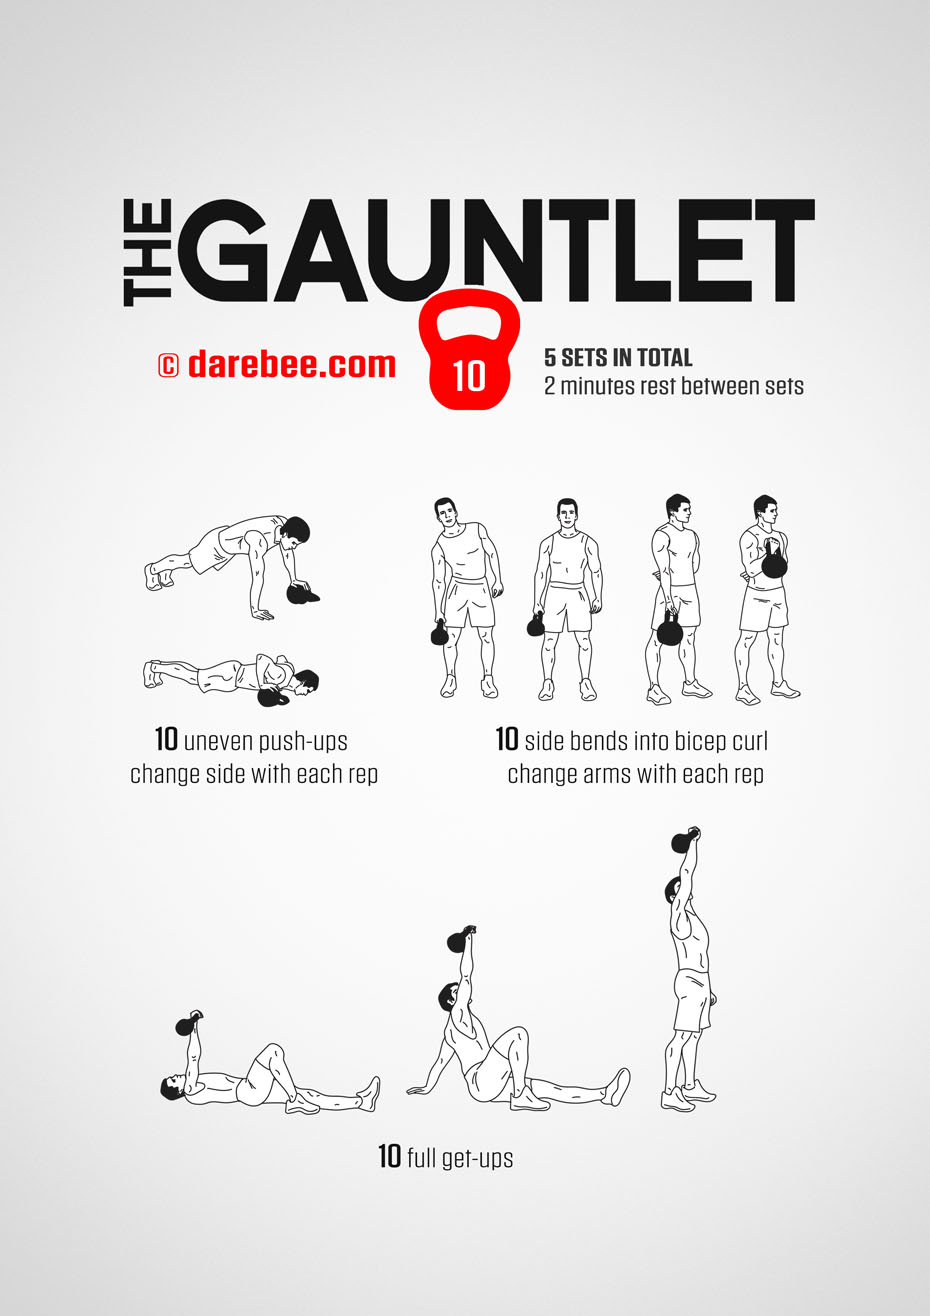 The Gauntlet - Kettlebell Fitness Program by DAREBEE